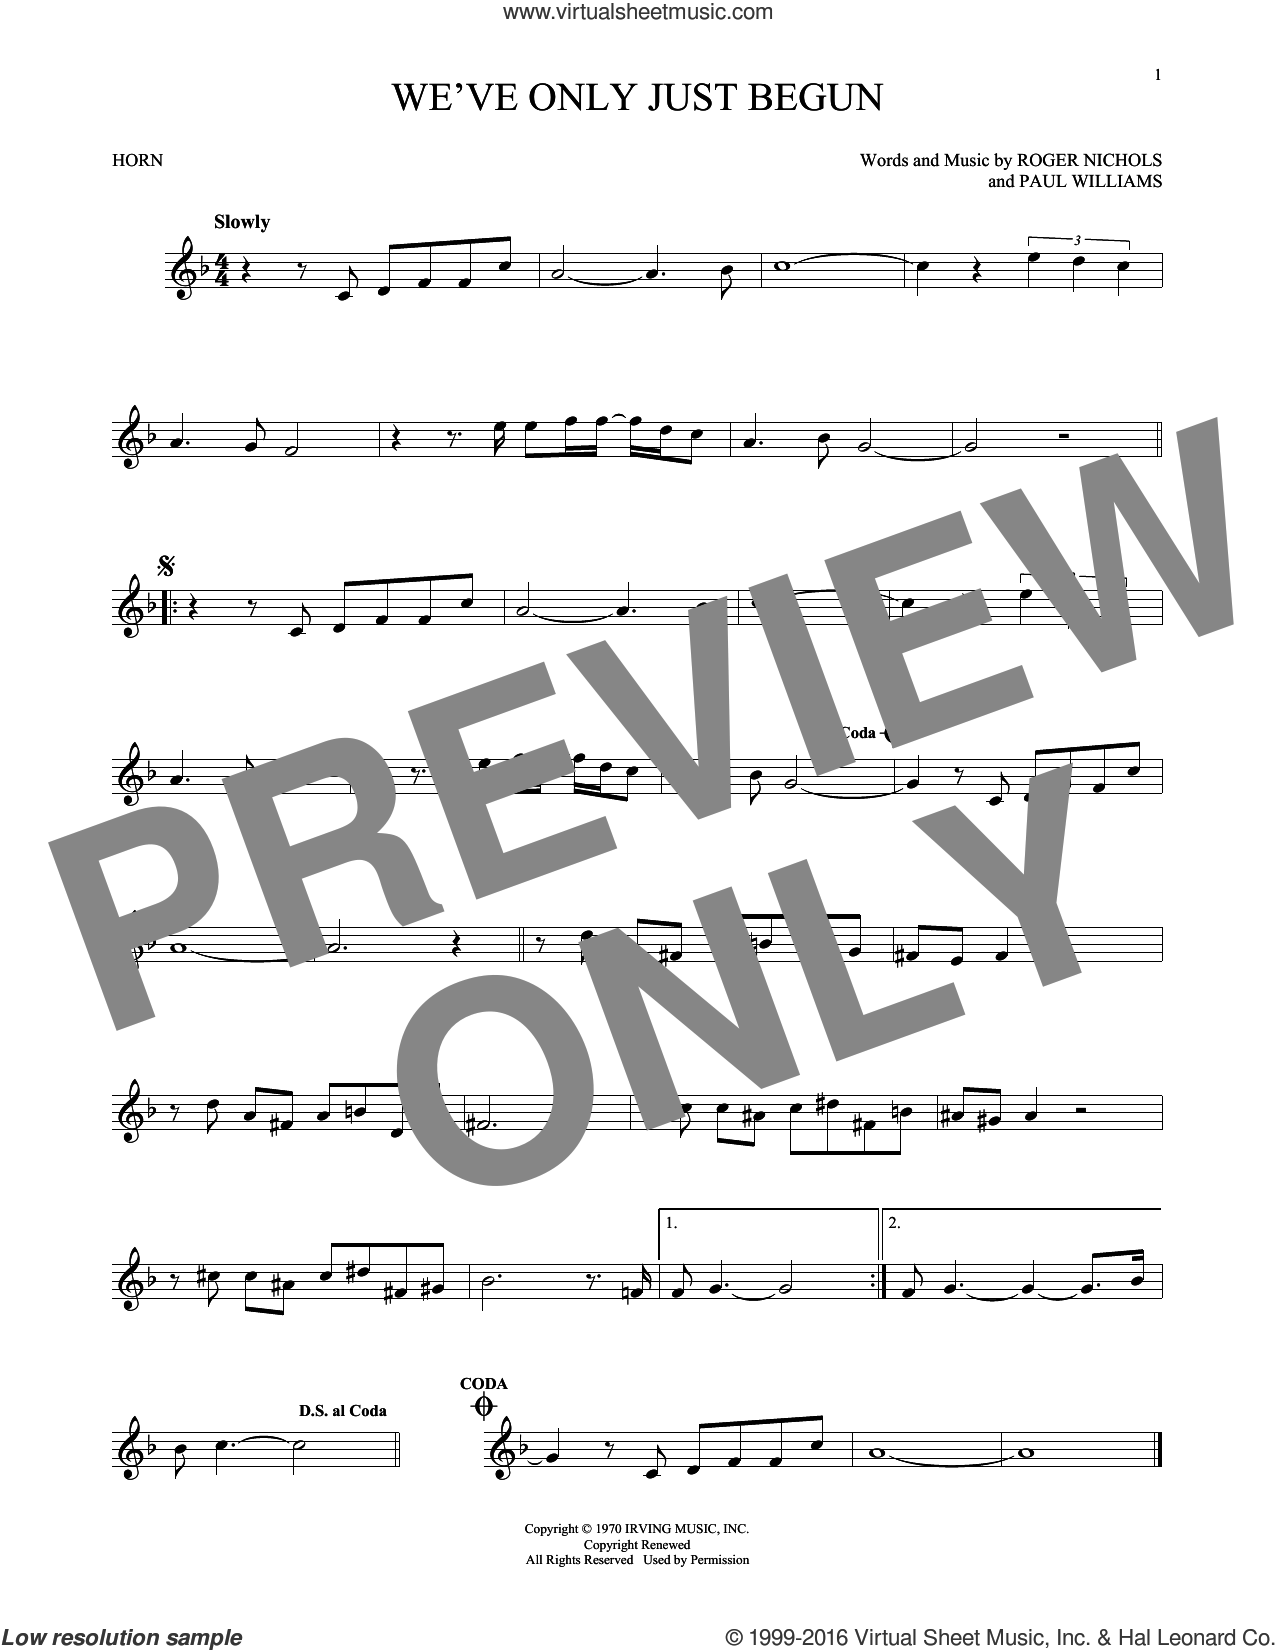 We've Only Just Begun sheet music for horn solo by Roger Nichols, Carpenters and Paul Williams. Score Image Preview.